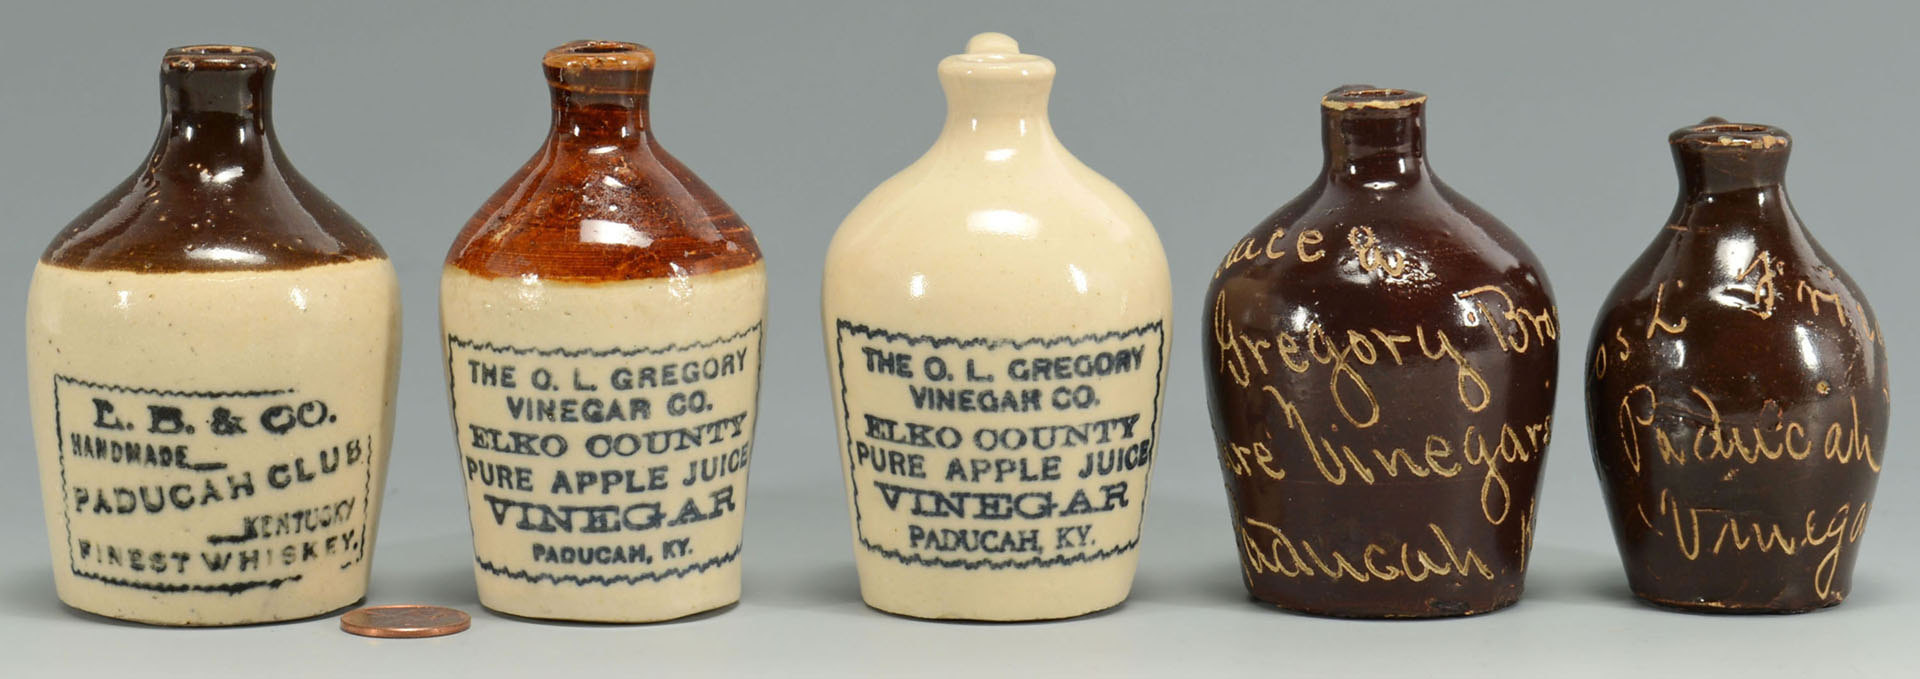 Lot 551: 5 Paducah KY Miniature Whiskey & Vinegar Jugs